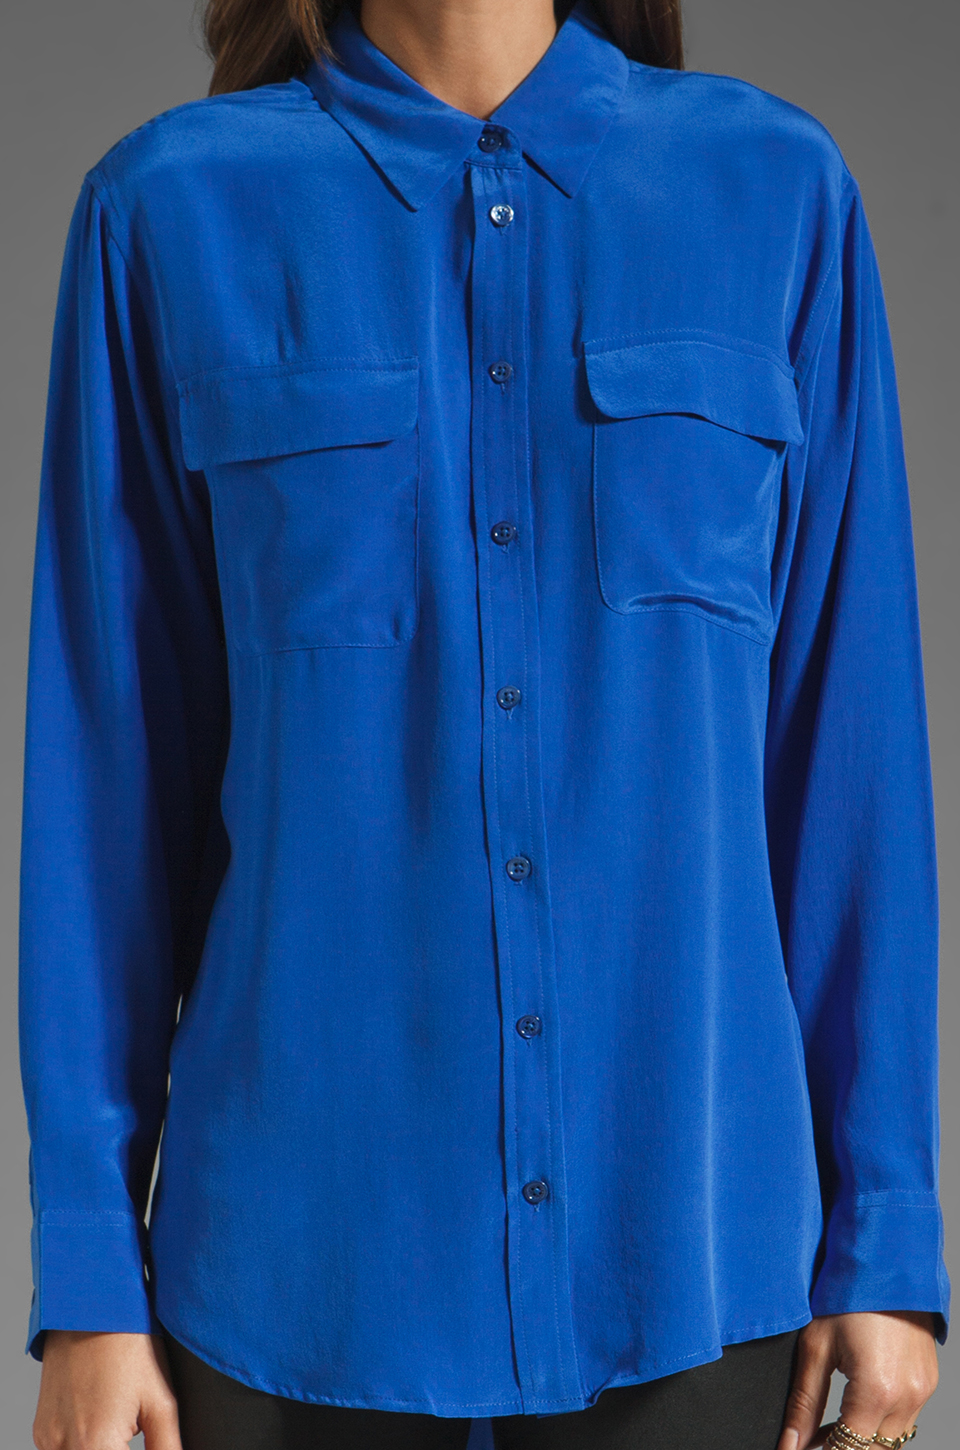 Equipment Signature Blouse in Regal Blue